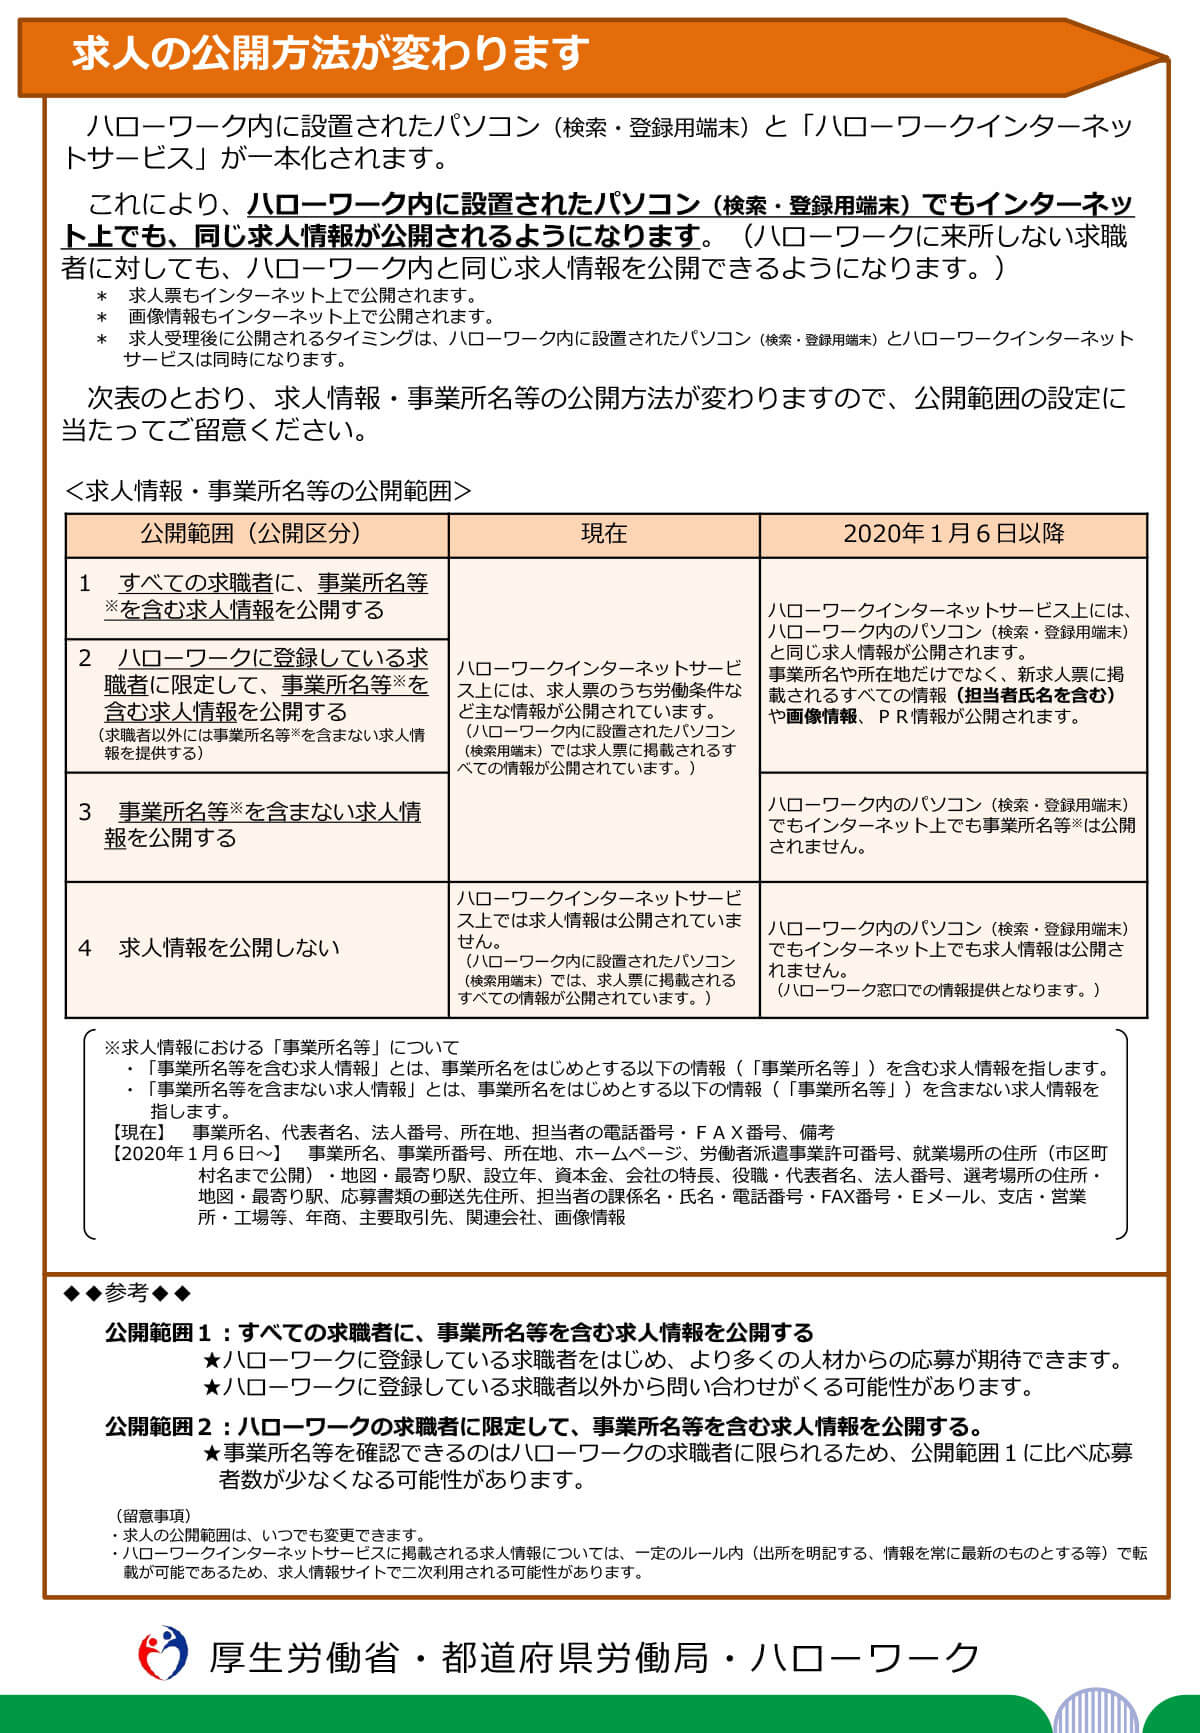 20200106-3-job_posting_published-2